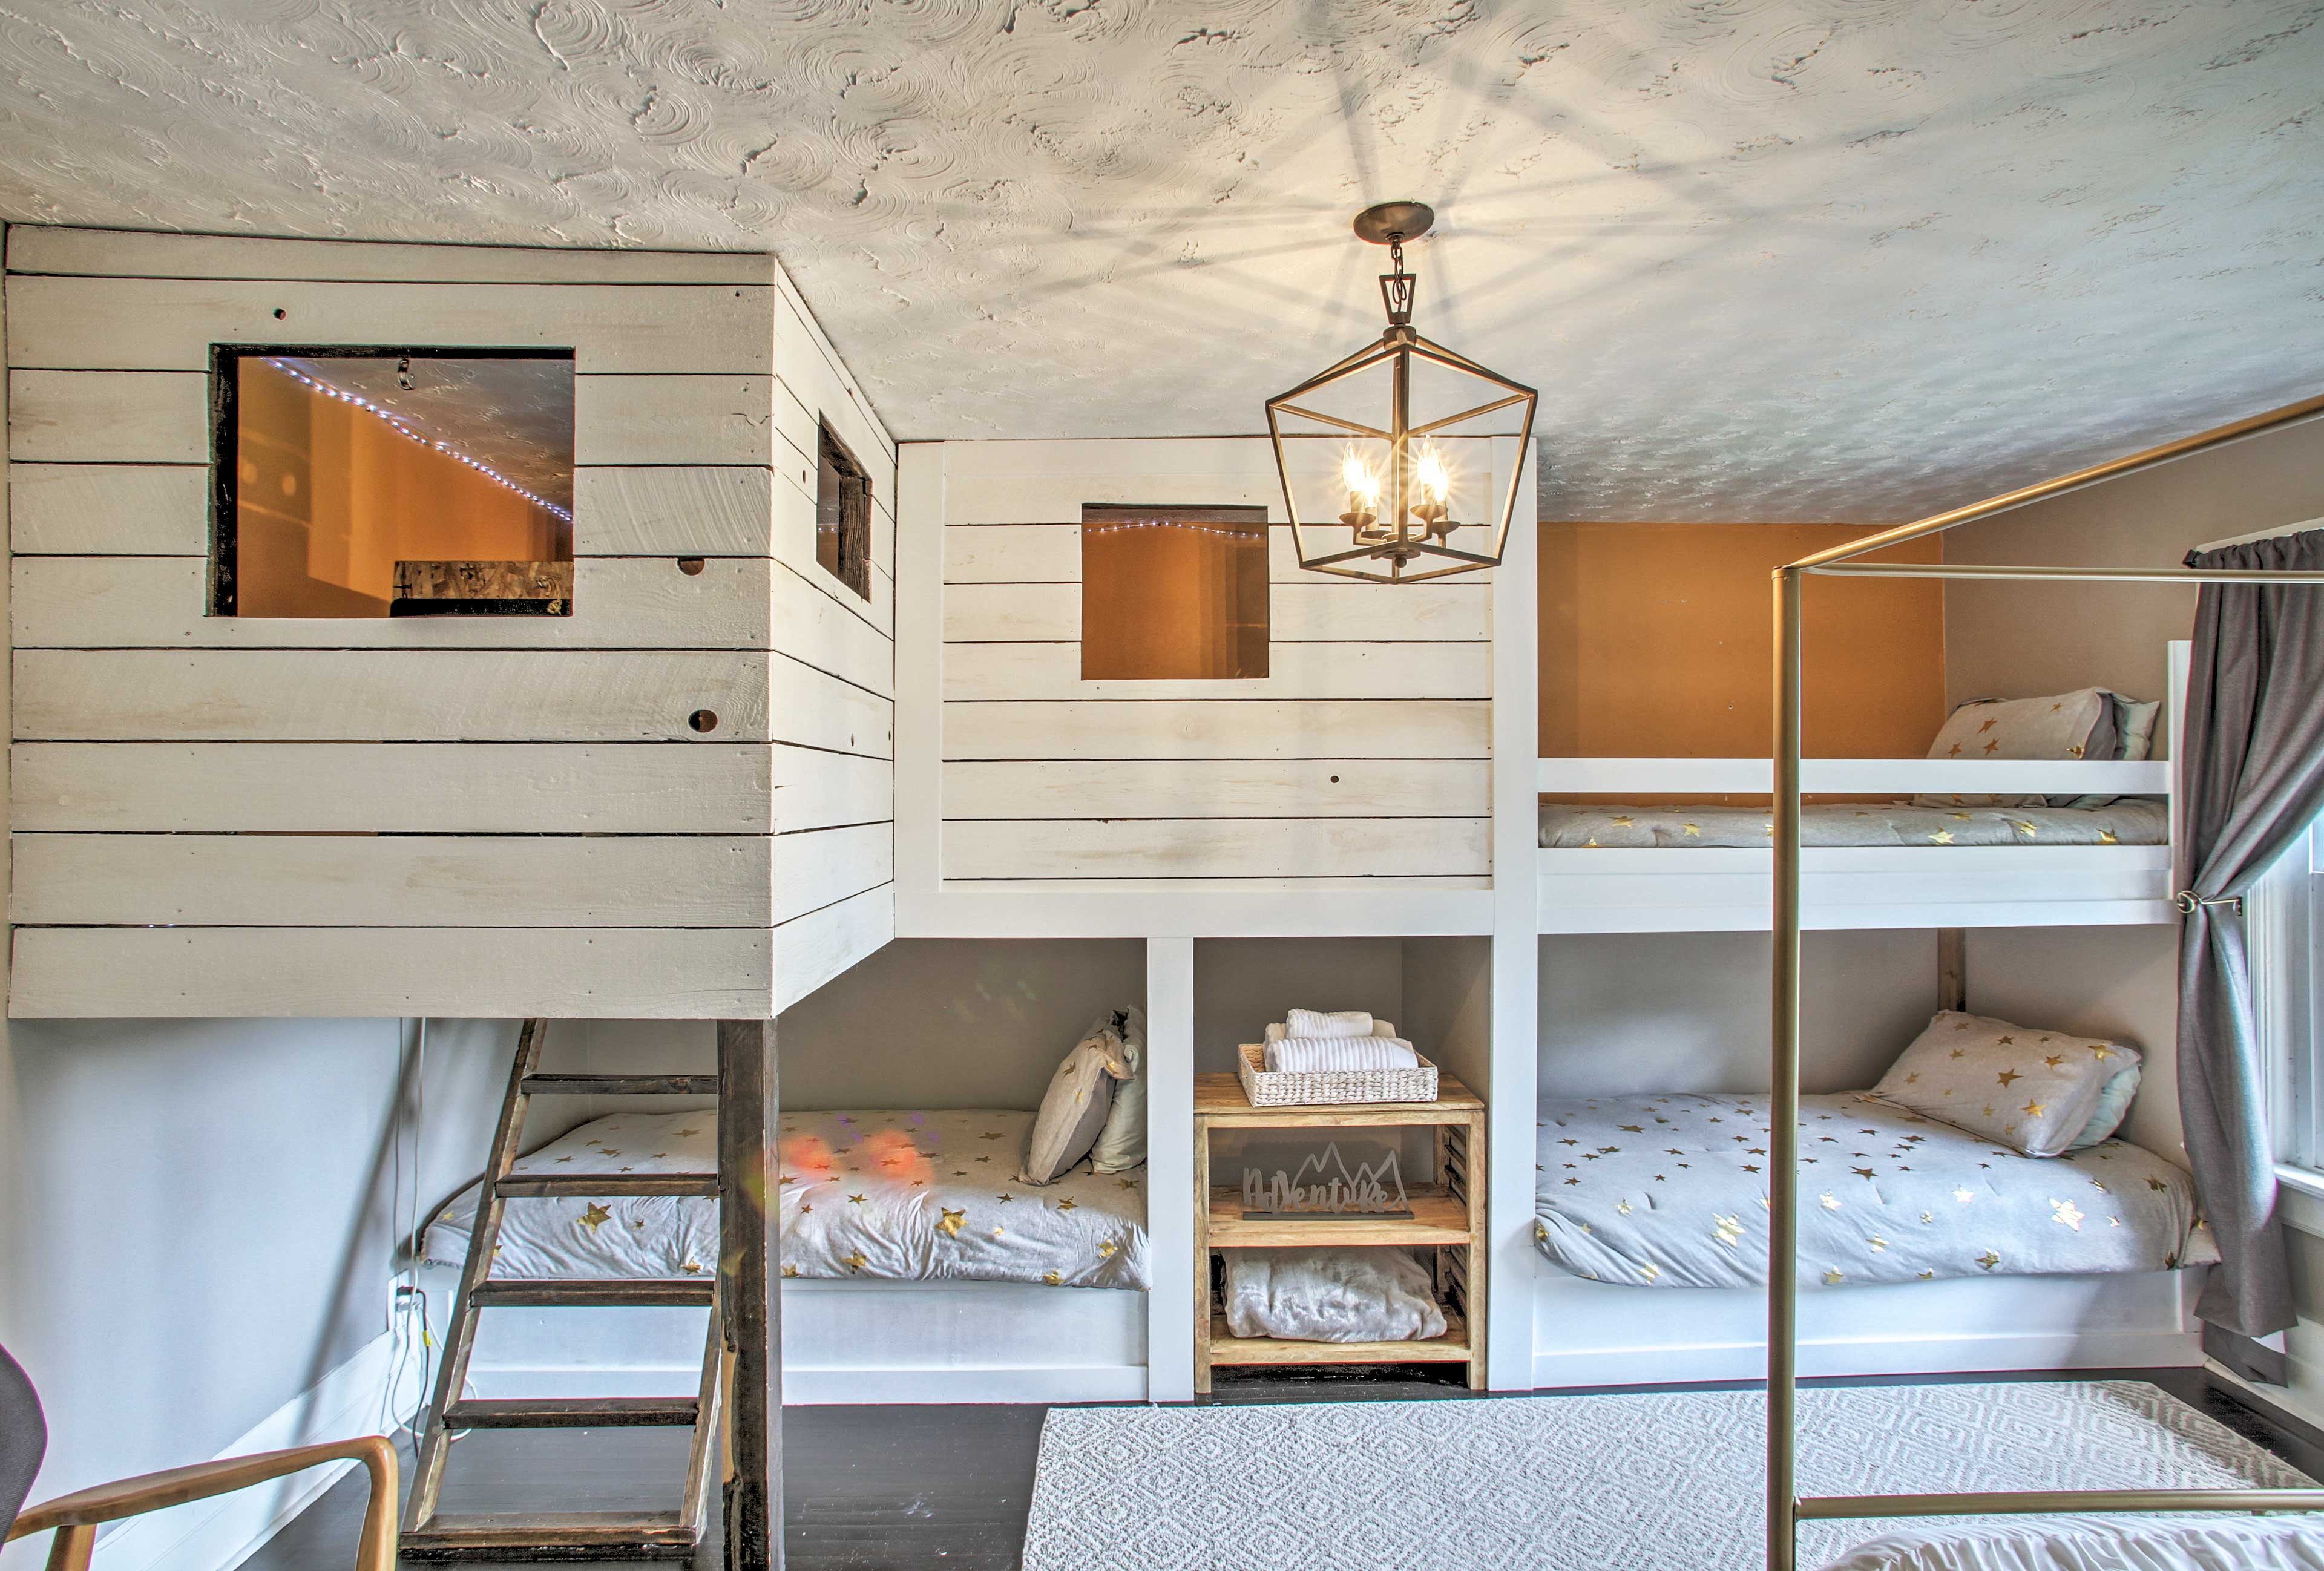 The kids are guaranteed to love the sweet bunk room!